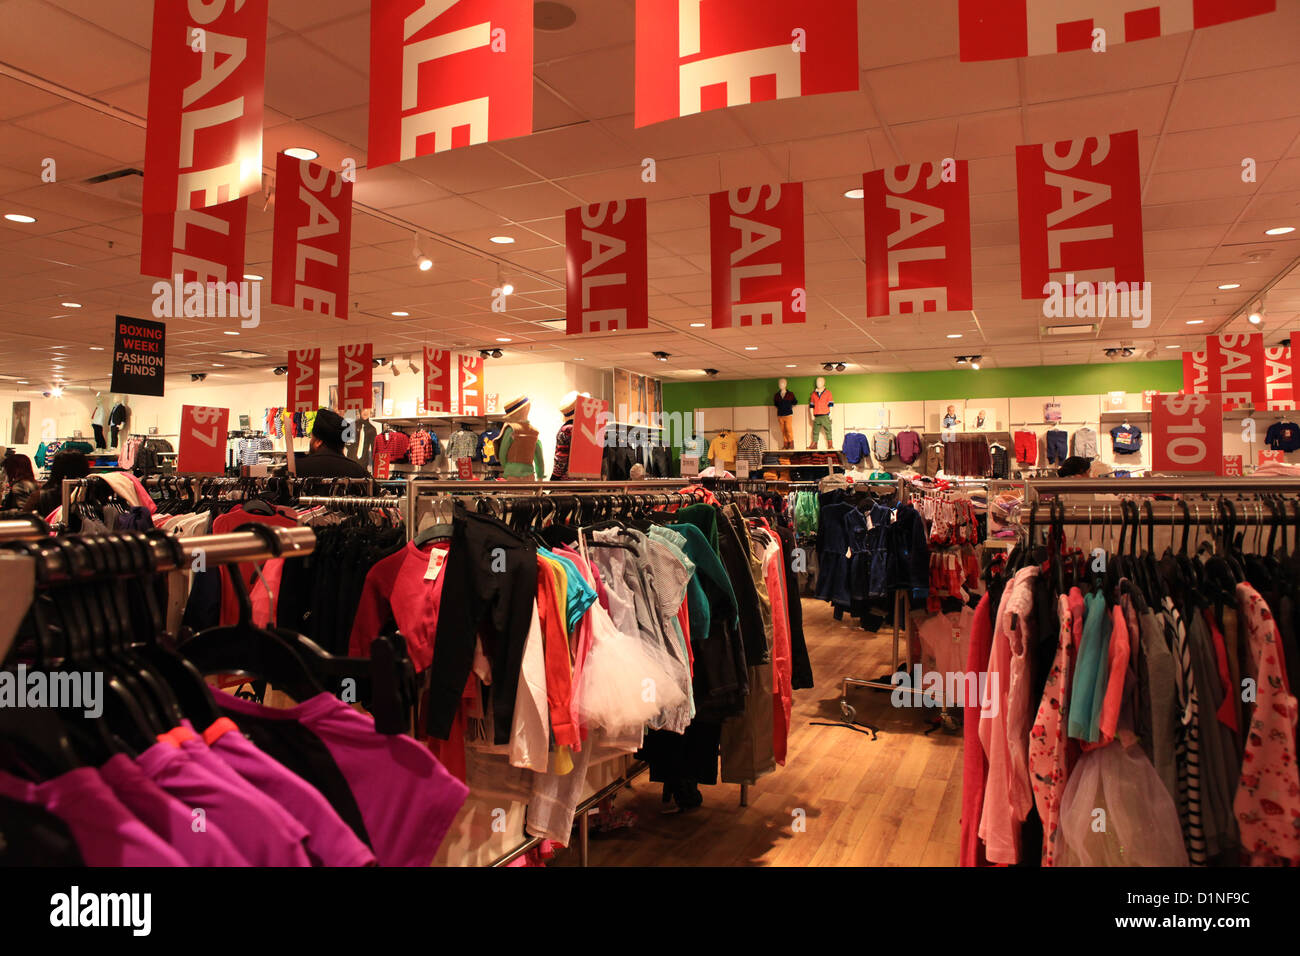 boxing week massive sale in h m kids store in vaughan mills mall in stock photo royalty free. Black Bedroom Furniture Sets. Home Design Ideas